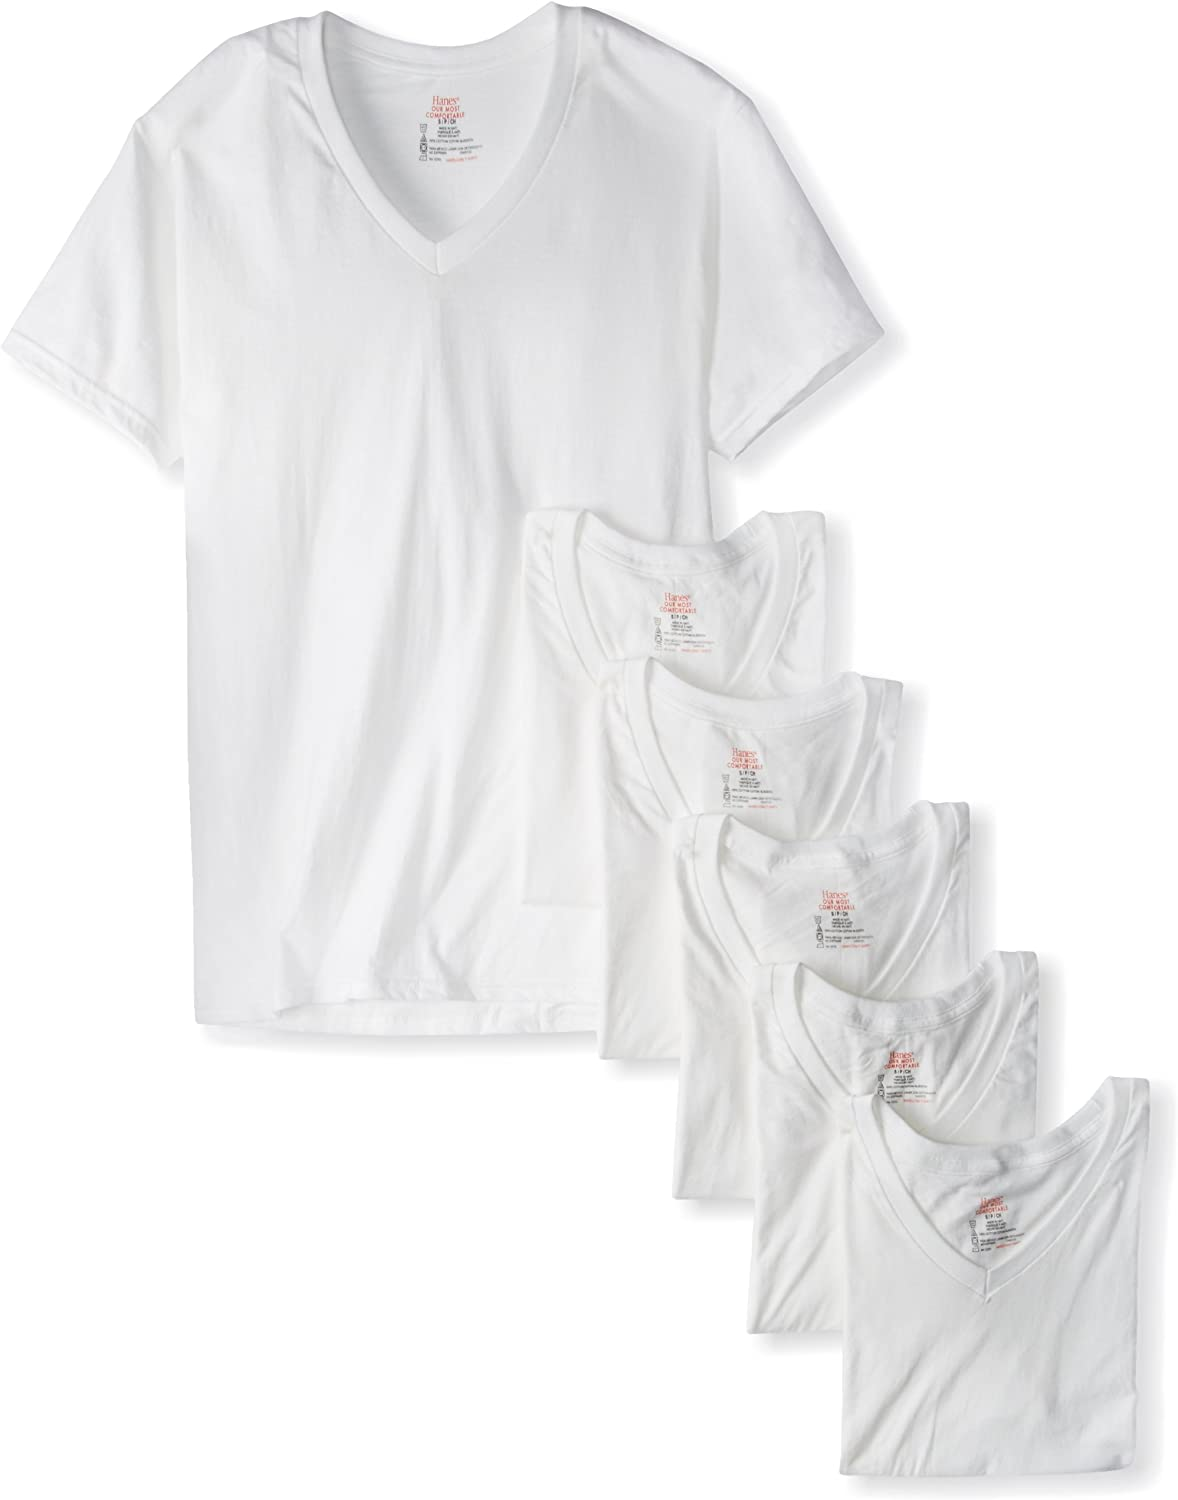 Manufacturer regenerated Special price for a limited time product Hanes Ultimate Men's 6-Pack V-Neck T-Shirt Best